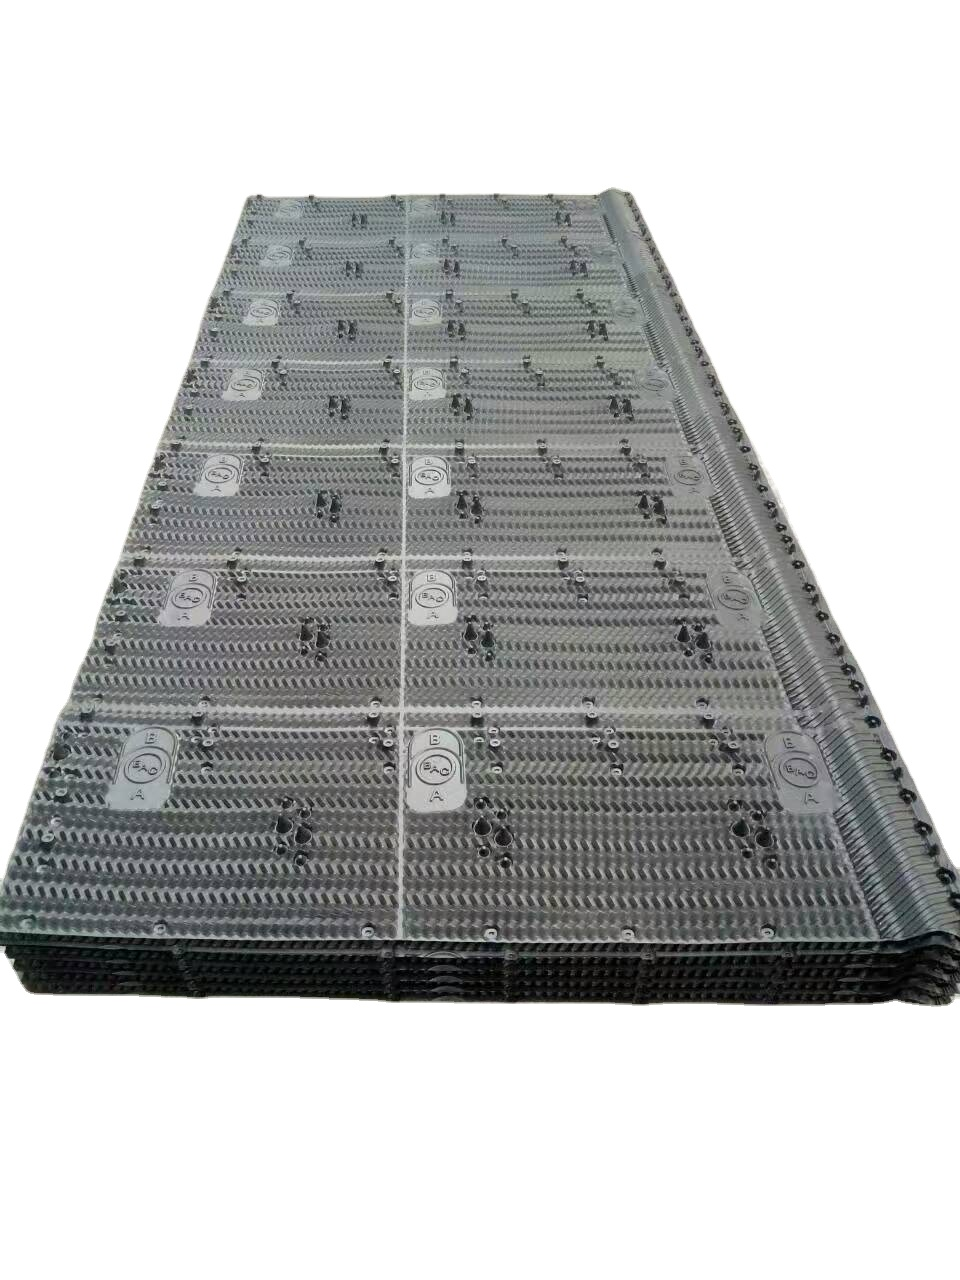 BAC Type cooling tower fill